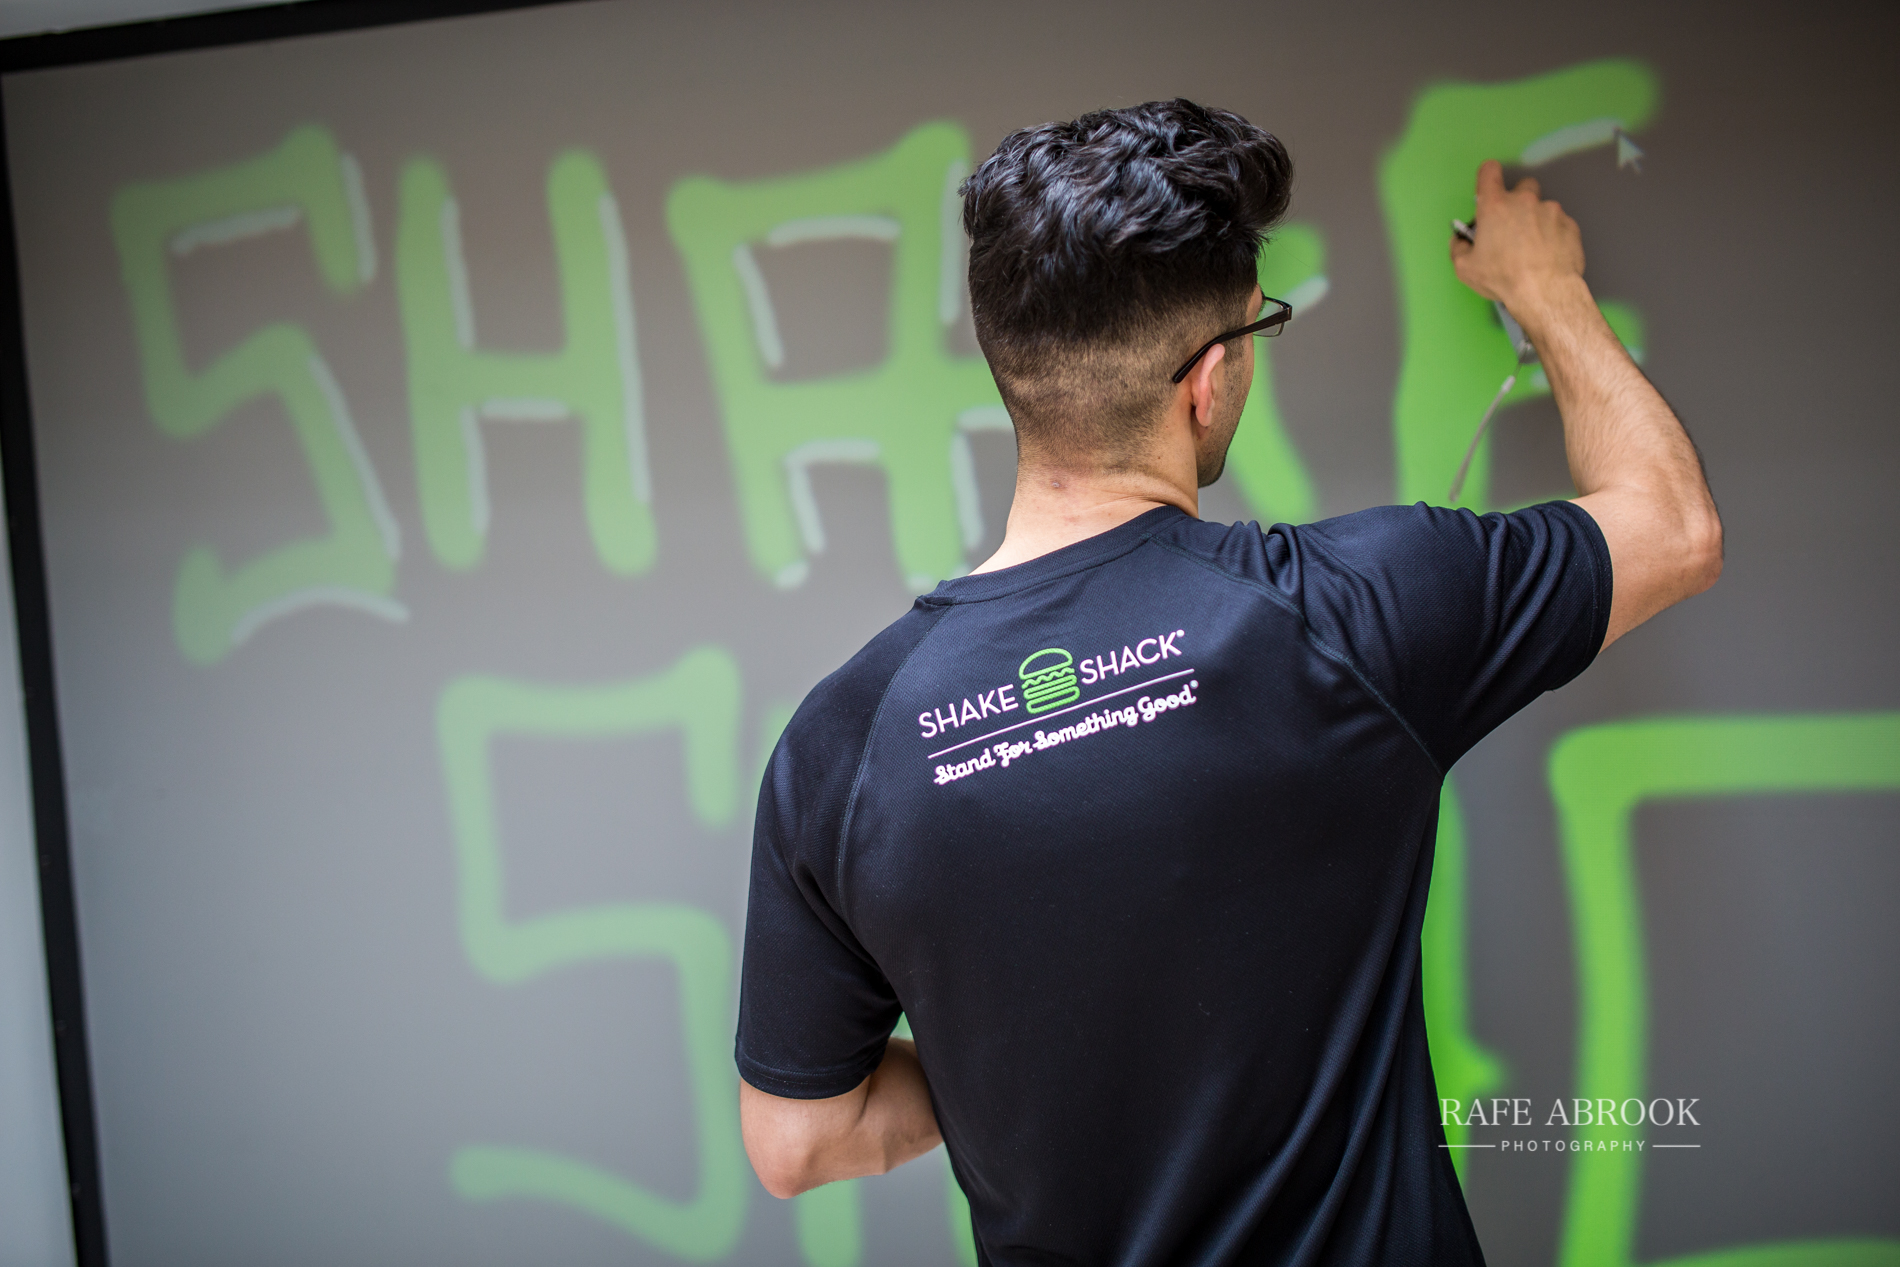 shake shack uk westfield stratford london experiential basketball-1033.jpg